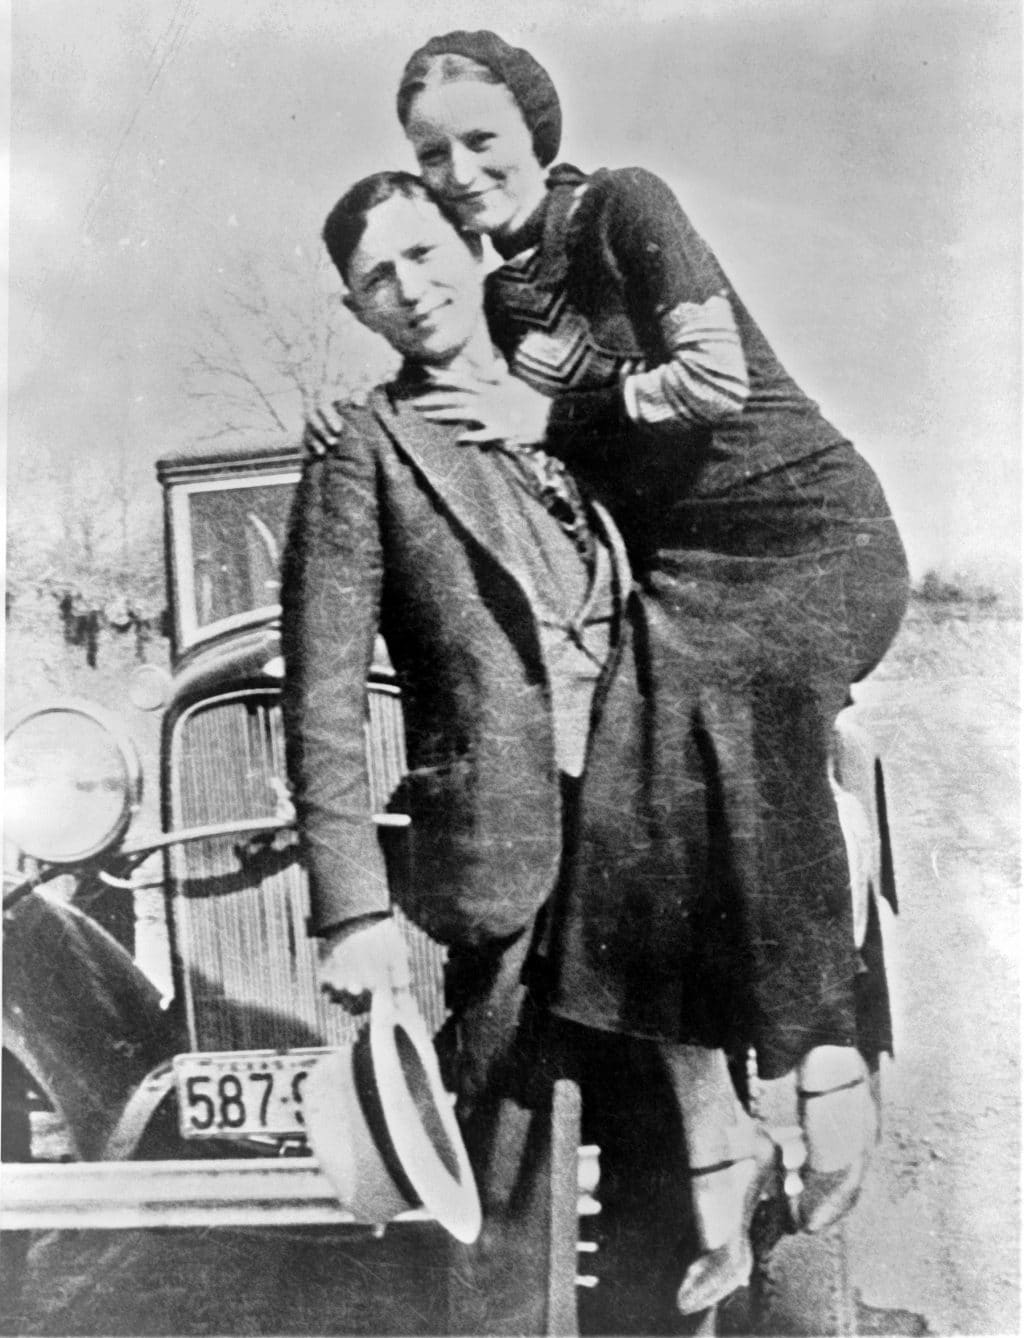 Bonnie and Clyde (c. 1933)